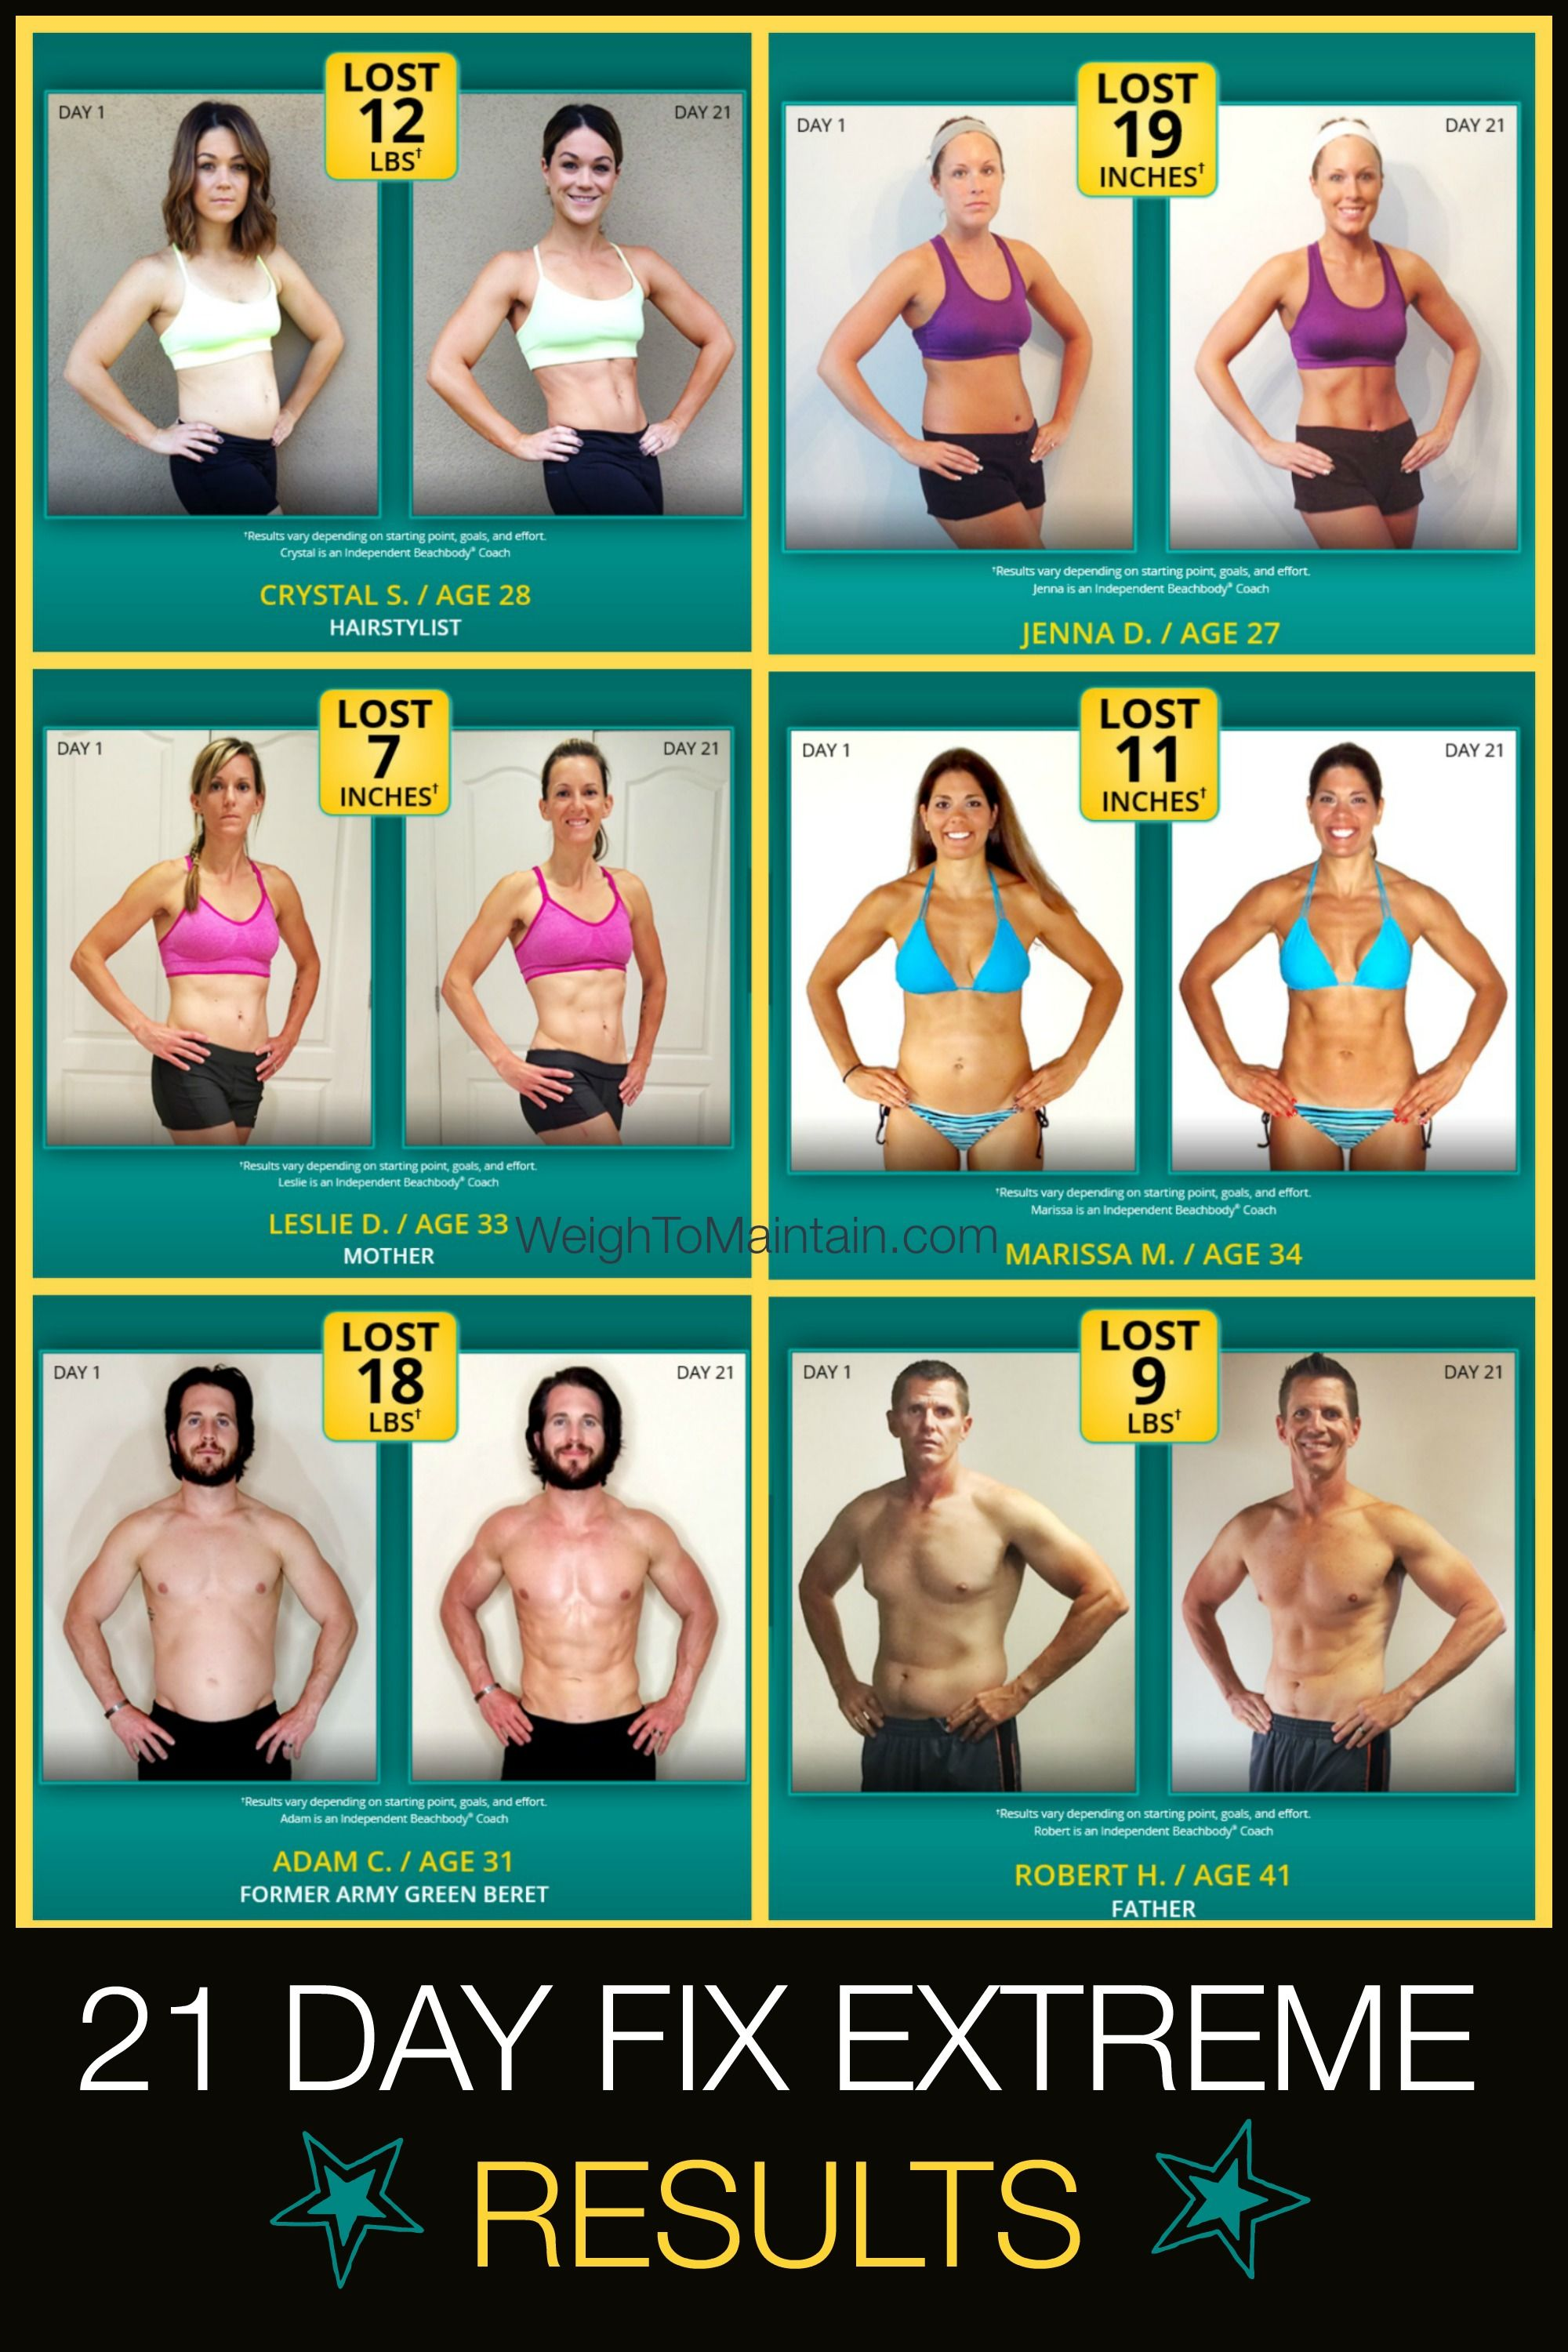 21 Day Fix Extreme Review Meal Plan Workouts Results And Faq S Plan A Healthy Life Extreme Workouts 21 Day Fix Extreme Workout